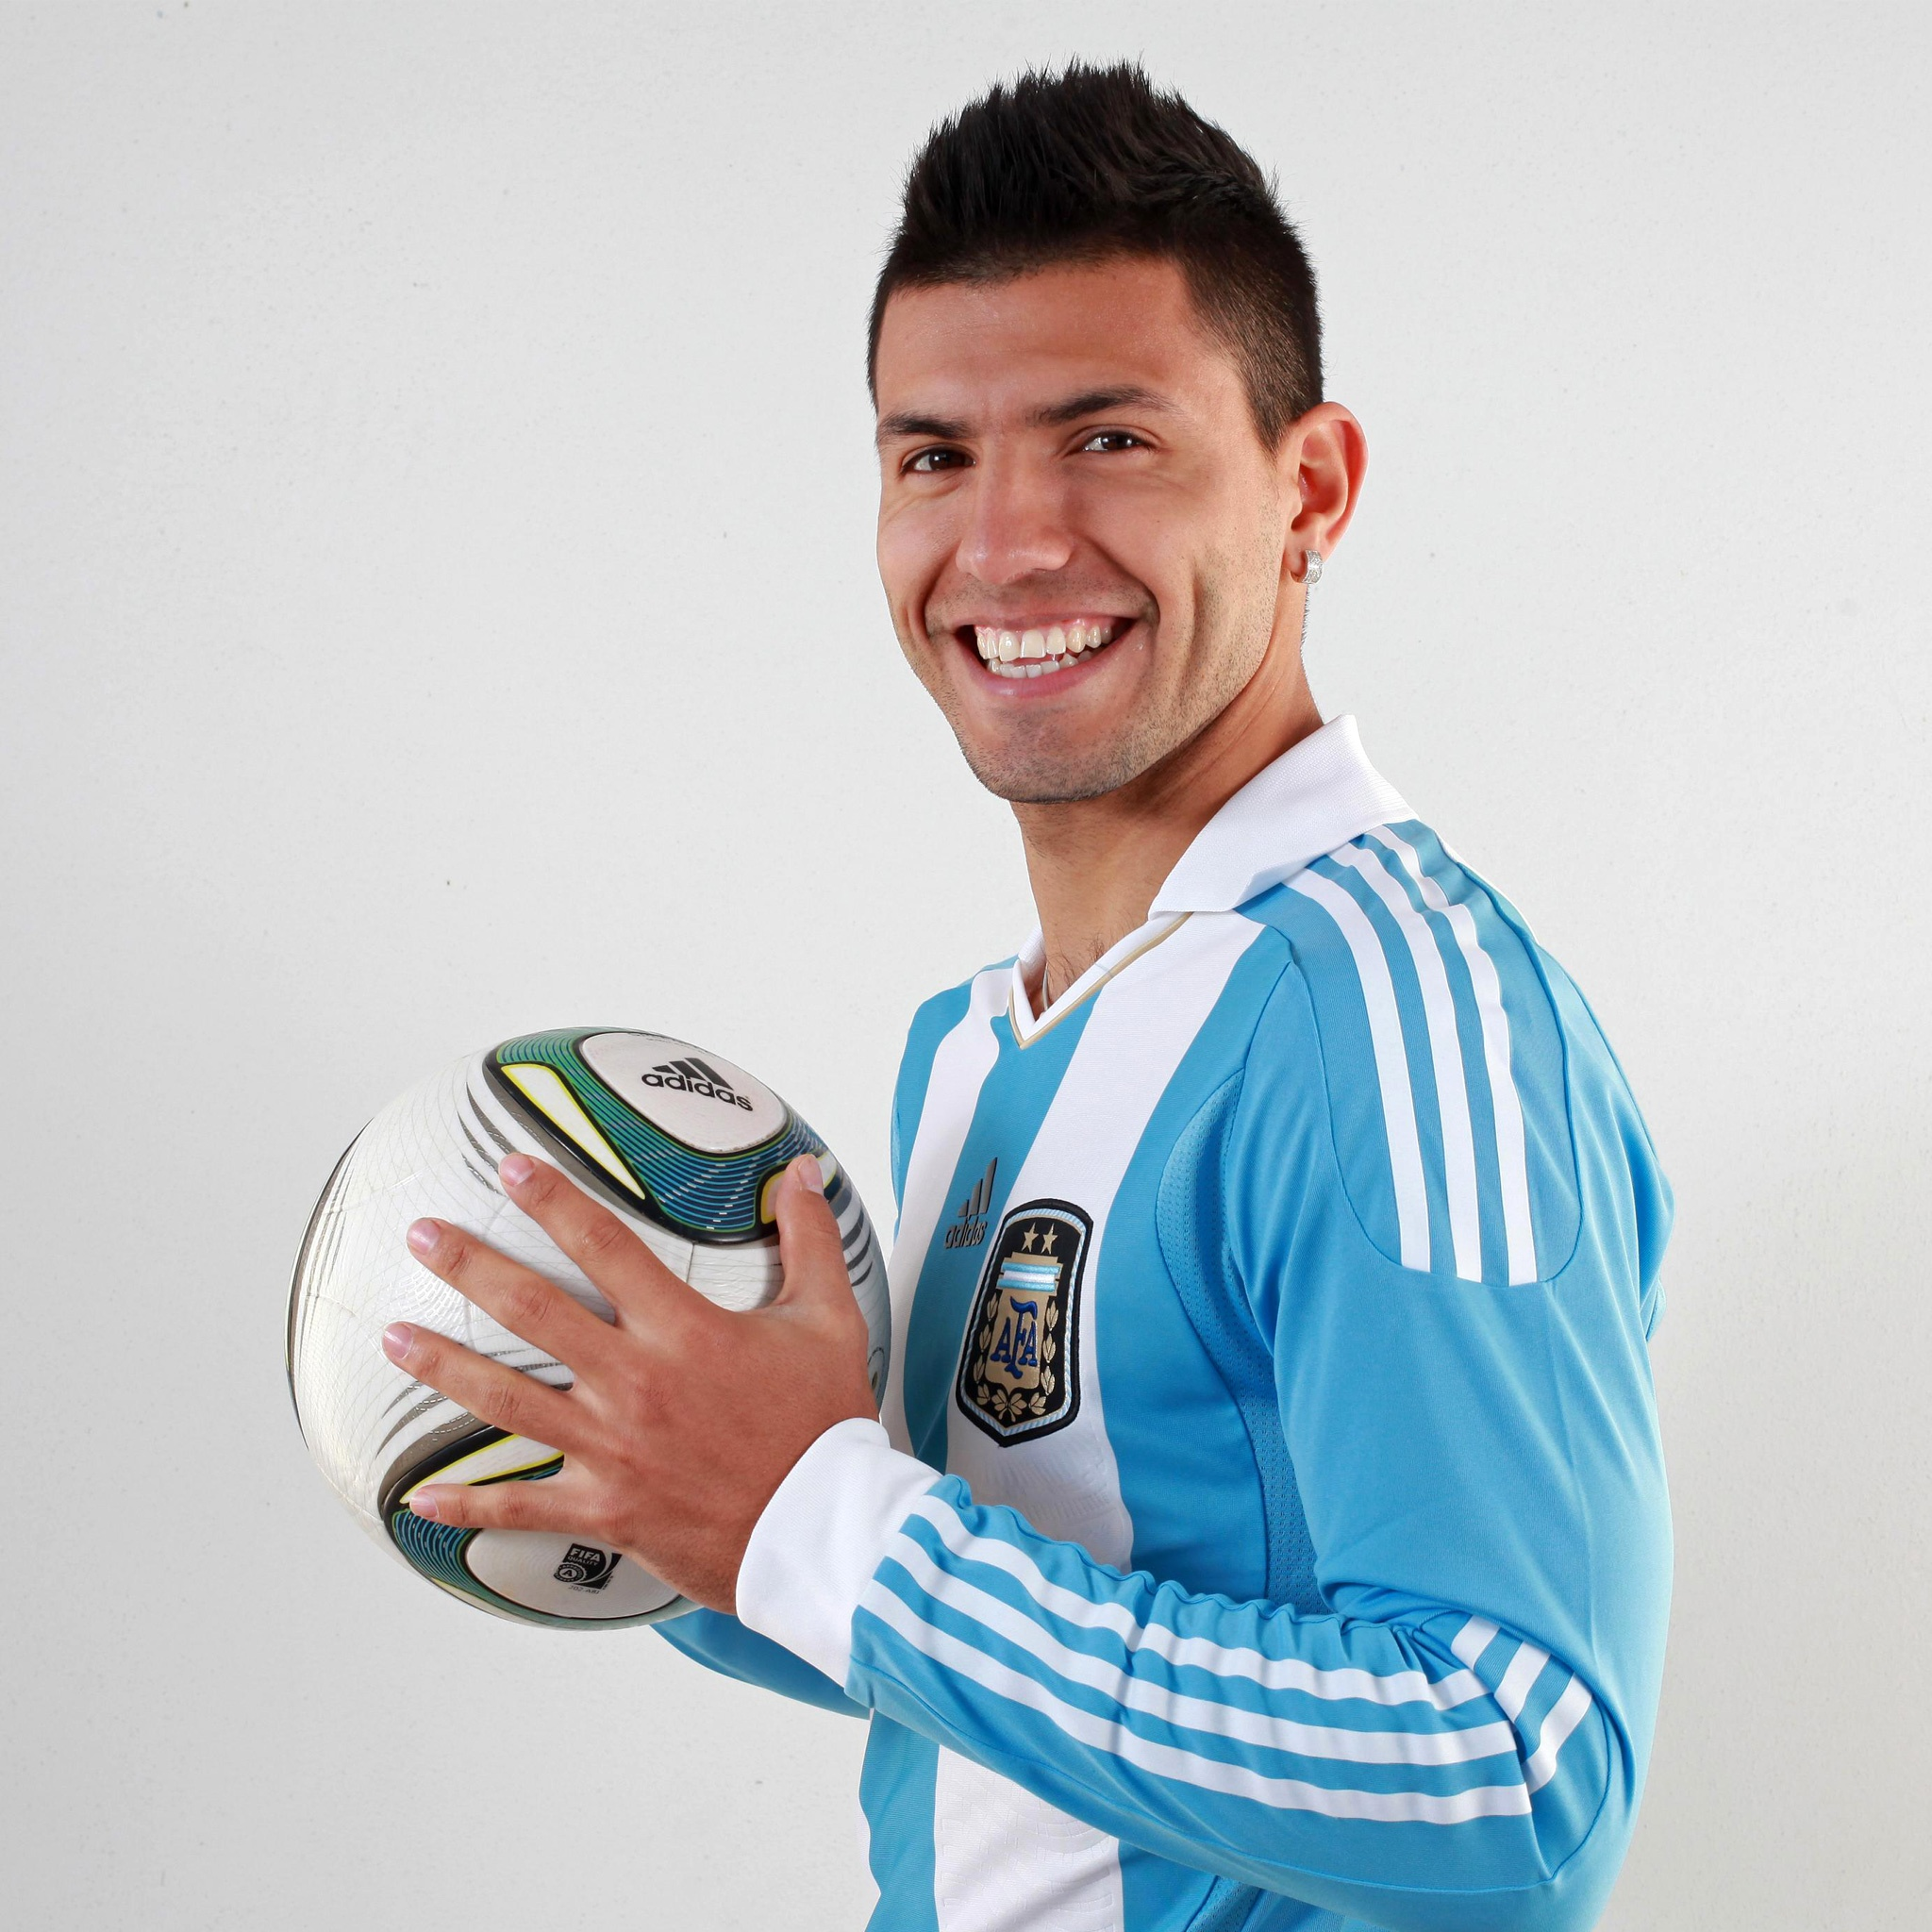 Sergio Aguero Wallpapers In Jpg Format For Free Download